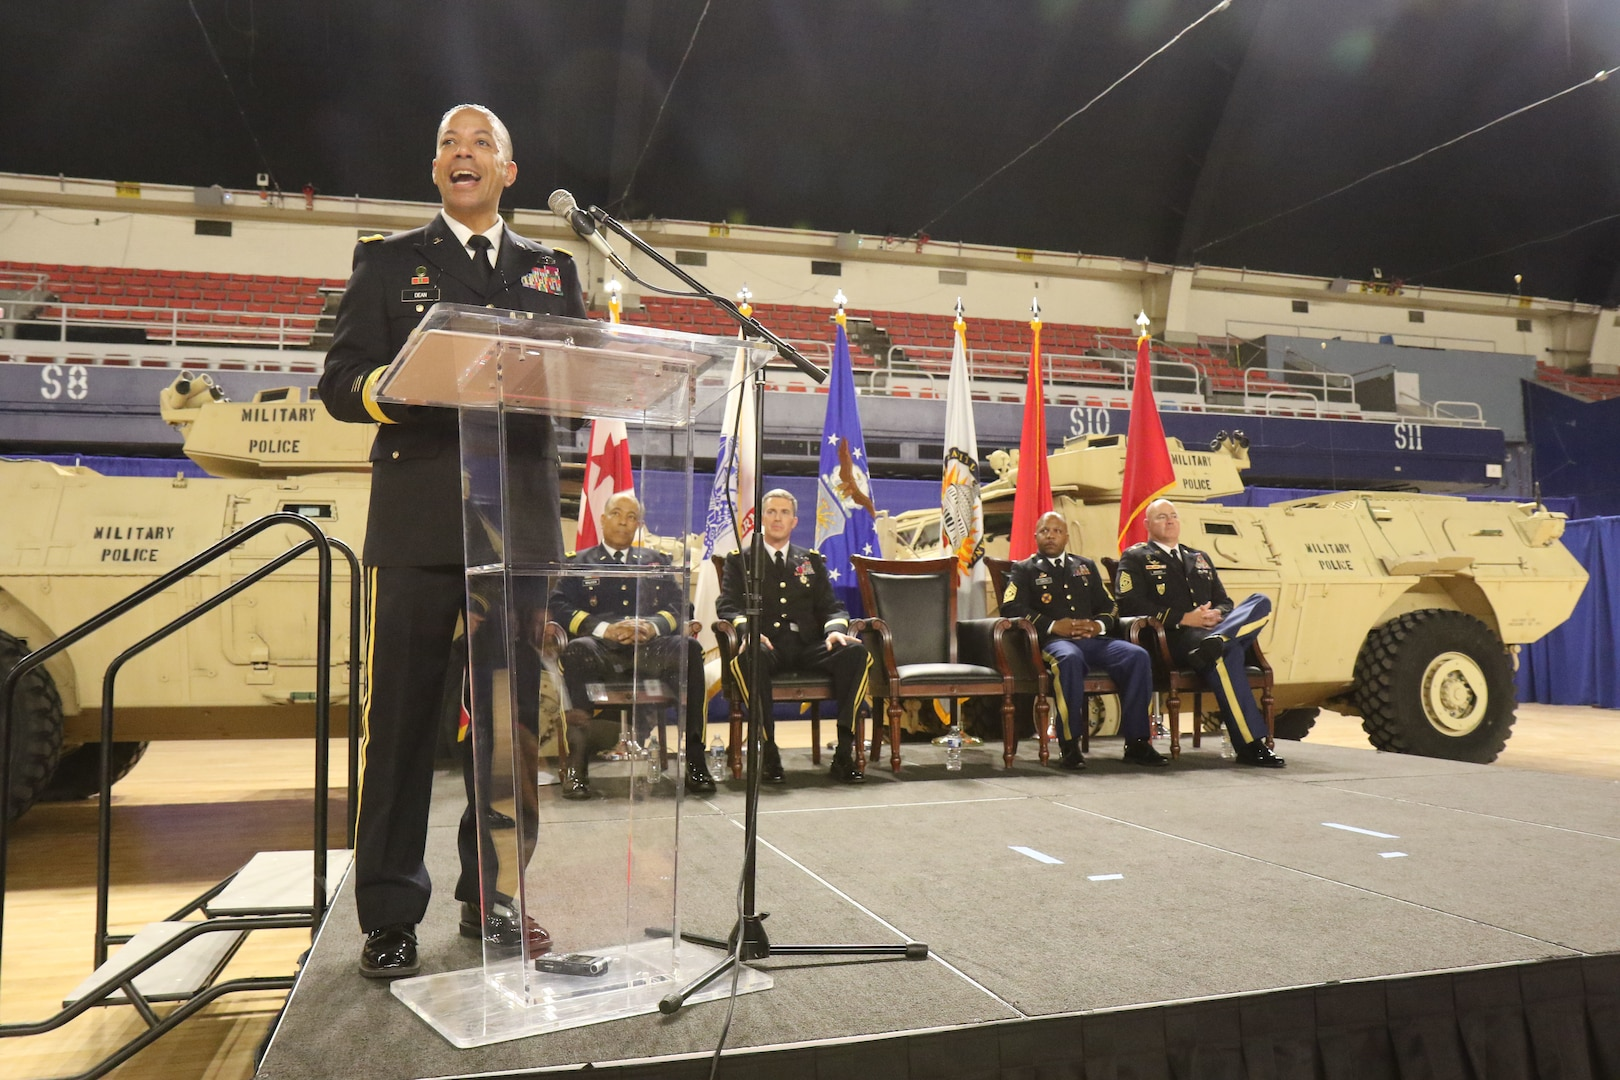 WASHINGTON - Brig. Gen. Aaron R. Dean II gives remarks after the Land Component Command change of responsibility ceremony, June 10, 2018 at the District of Columbia Armory. Dean is the adjutant general of the District of Columbia National Guard.  (U.S. Army National Guard photo by Sgt. Adrian Shelton/Released)